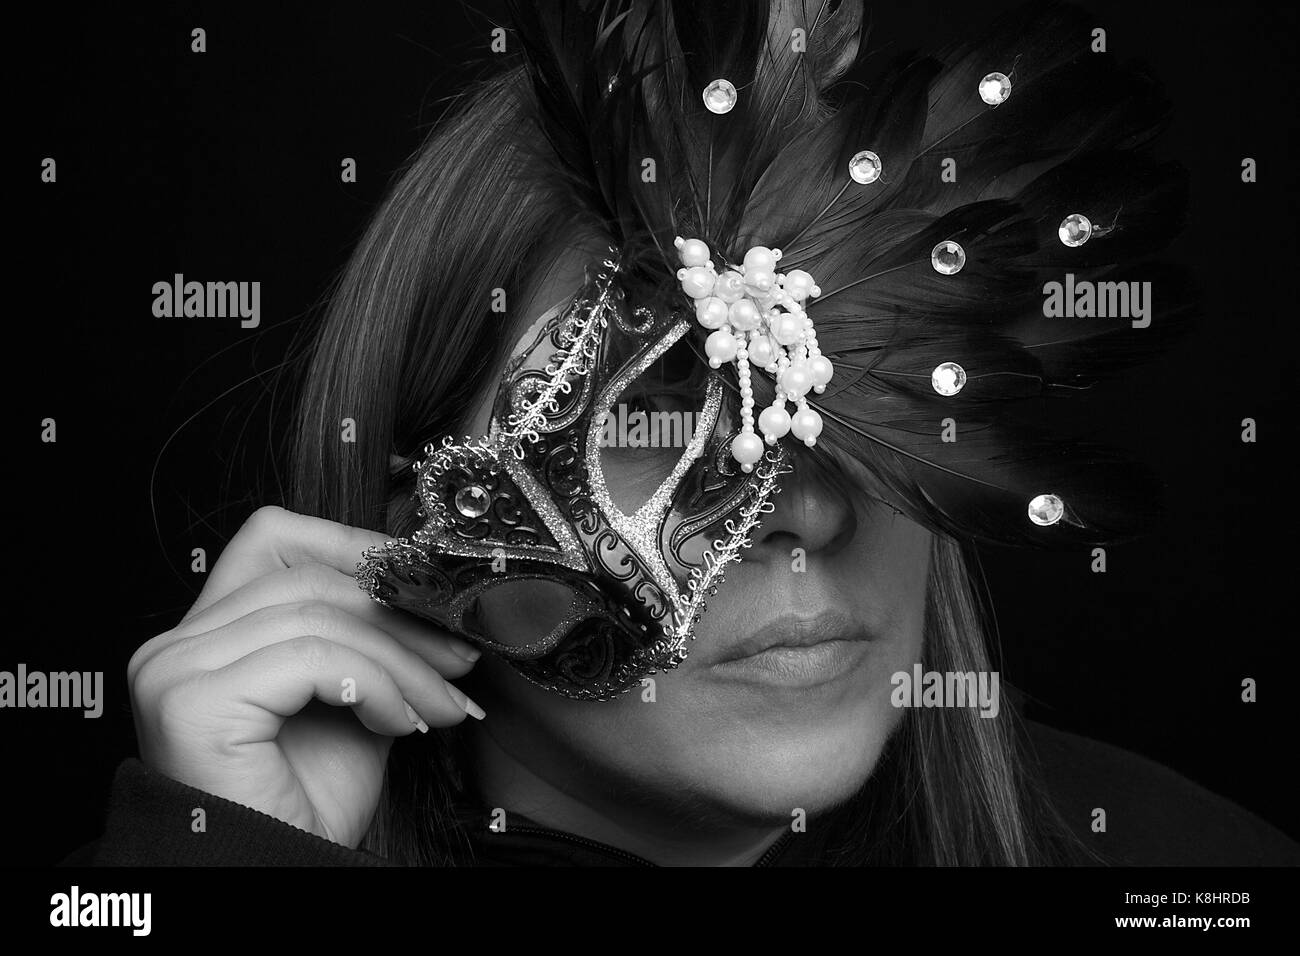 Masquerade Self - Portrait - Stock Image